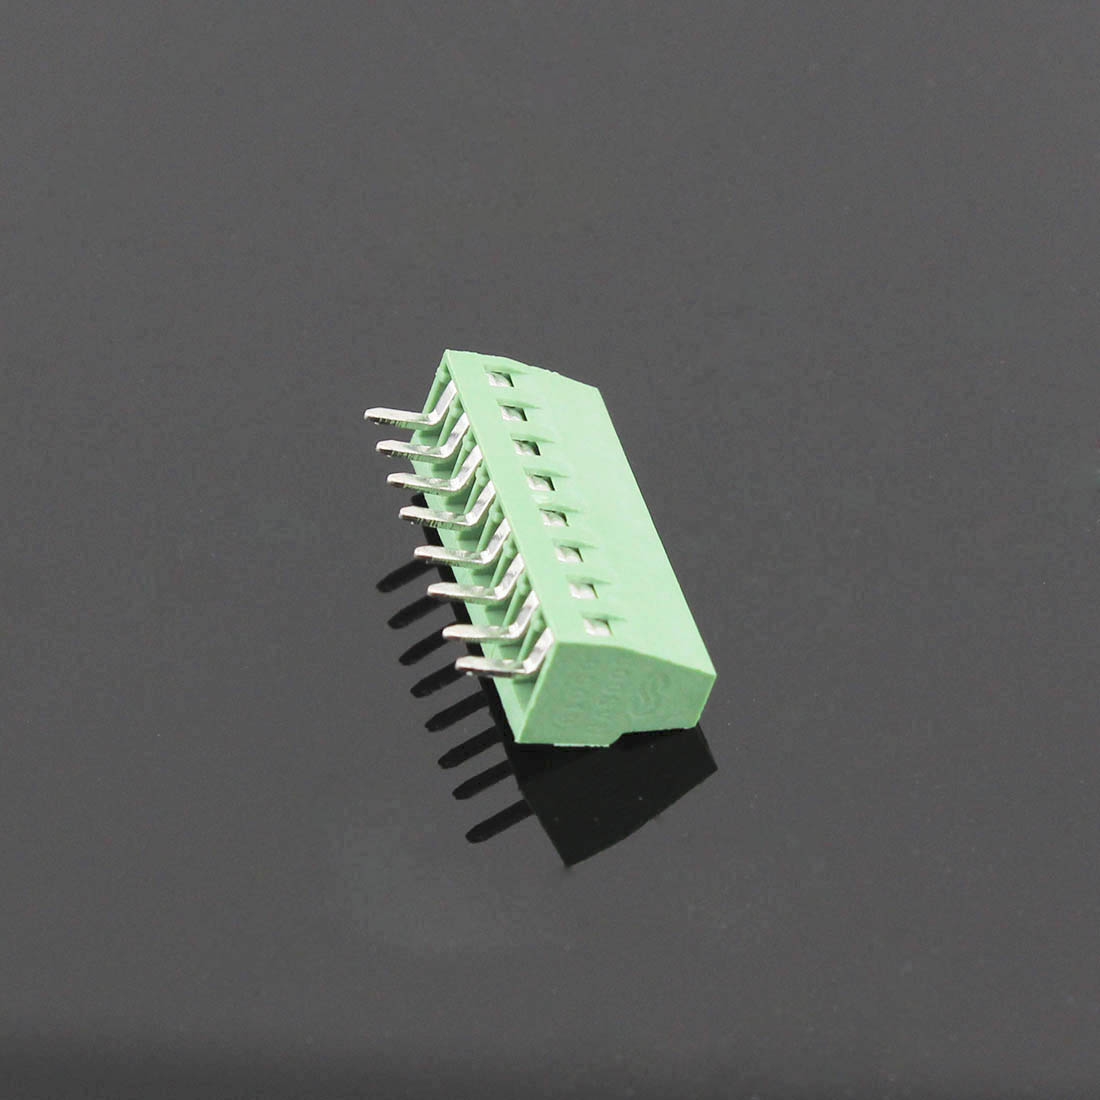 50pcs 8 pôles/8 broches 2.54mm 0.1 ''PCB connecteur de bornier à vis universel